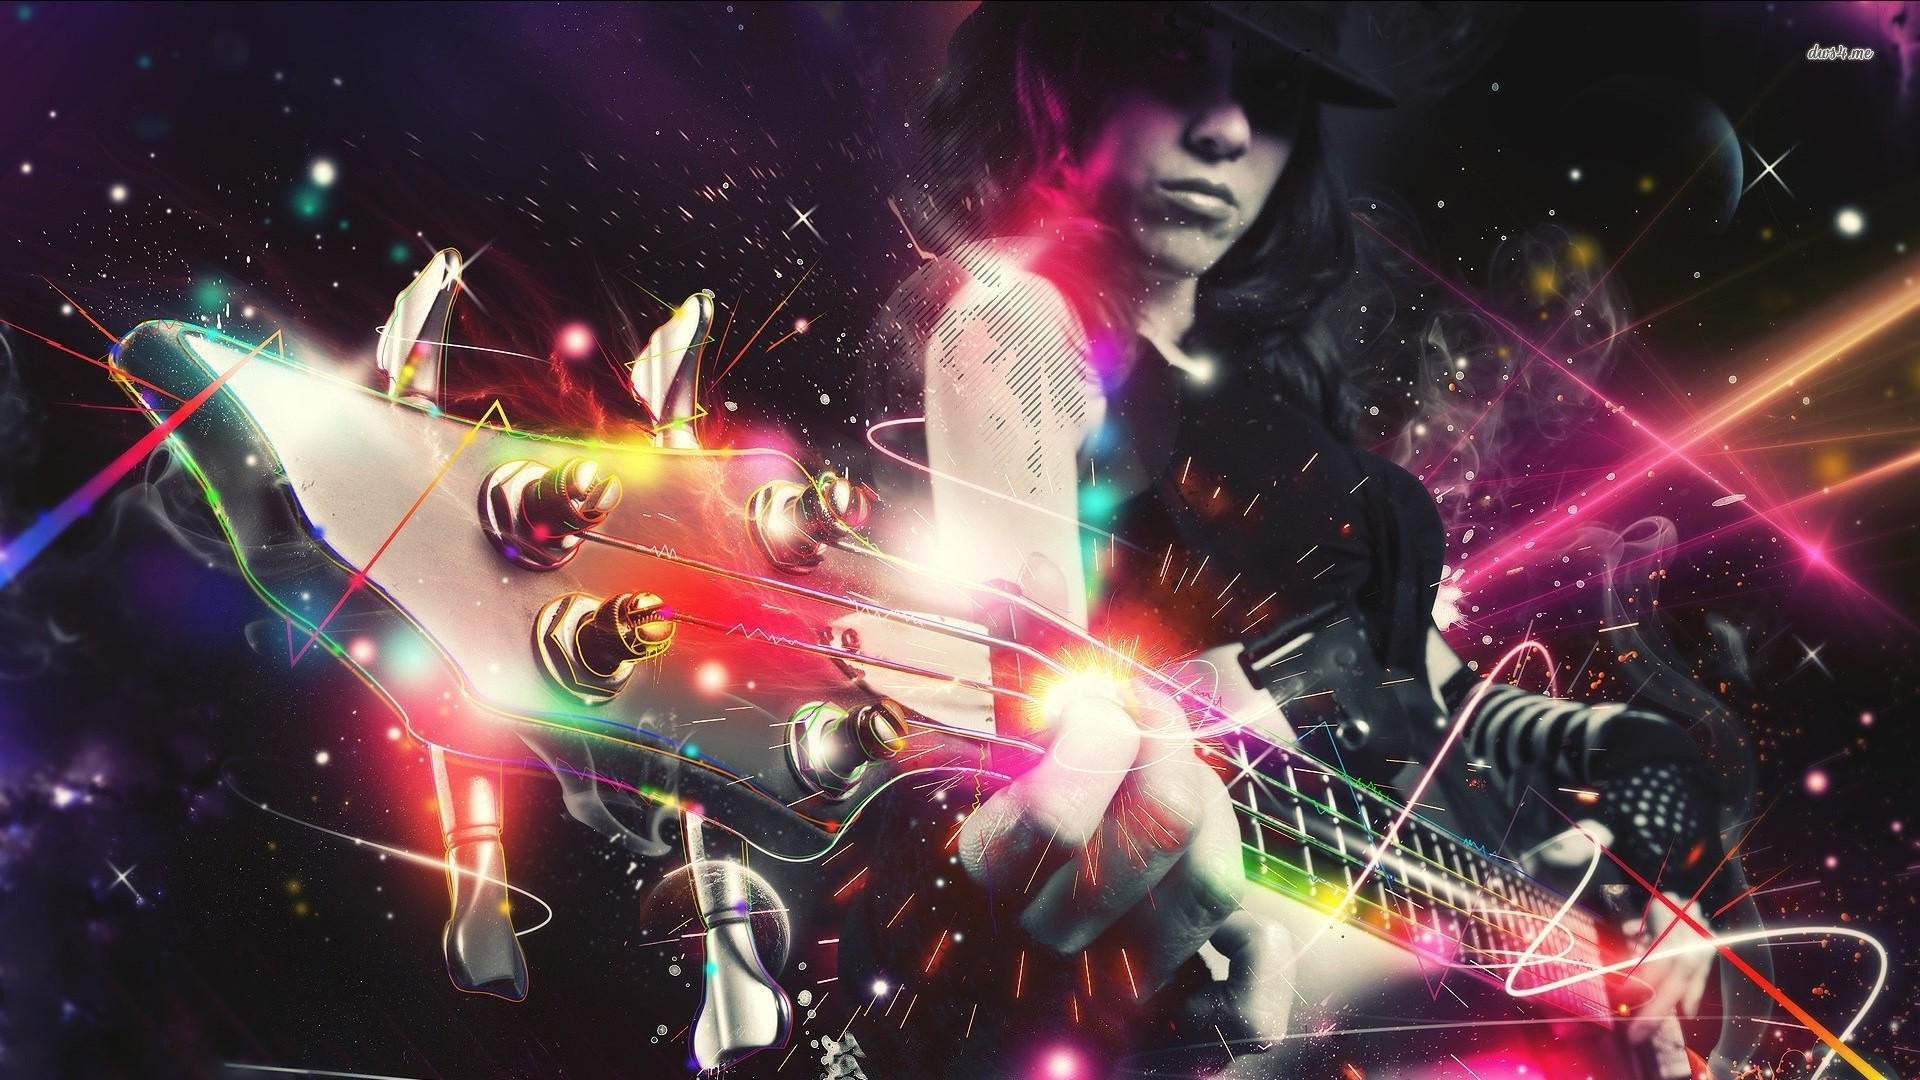 Falling Snow Animated Wallpaper Rock Star Background 52 Images